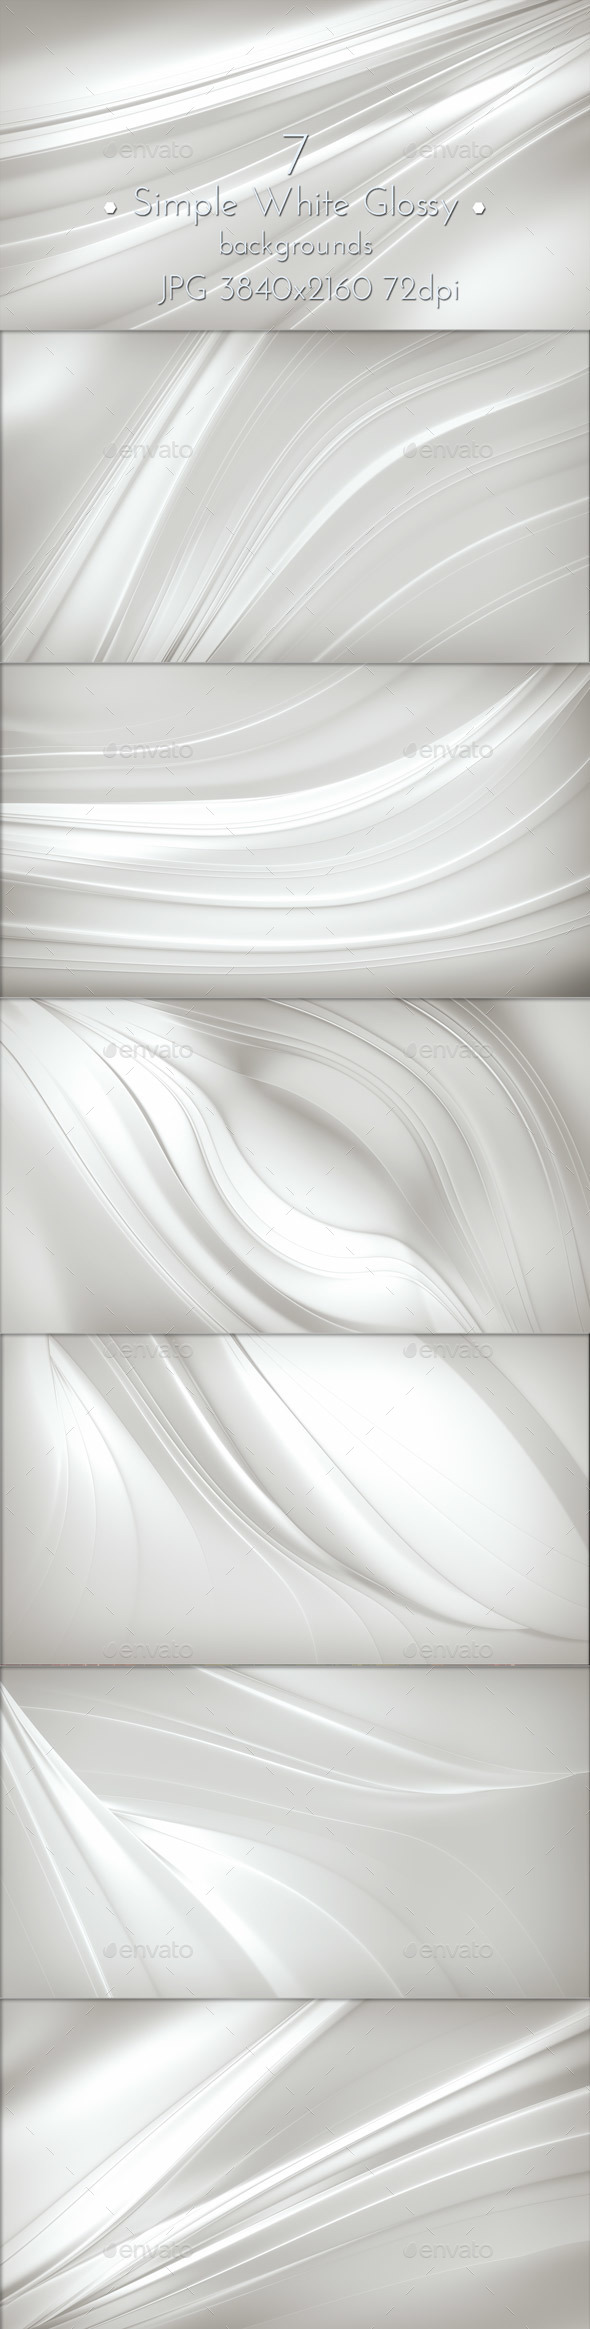 Simple White Glossy Background - Abstract Backgrounds